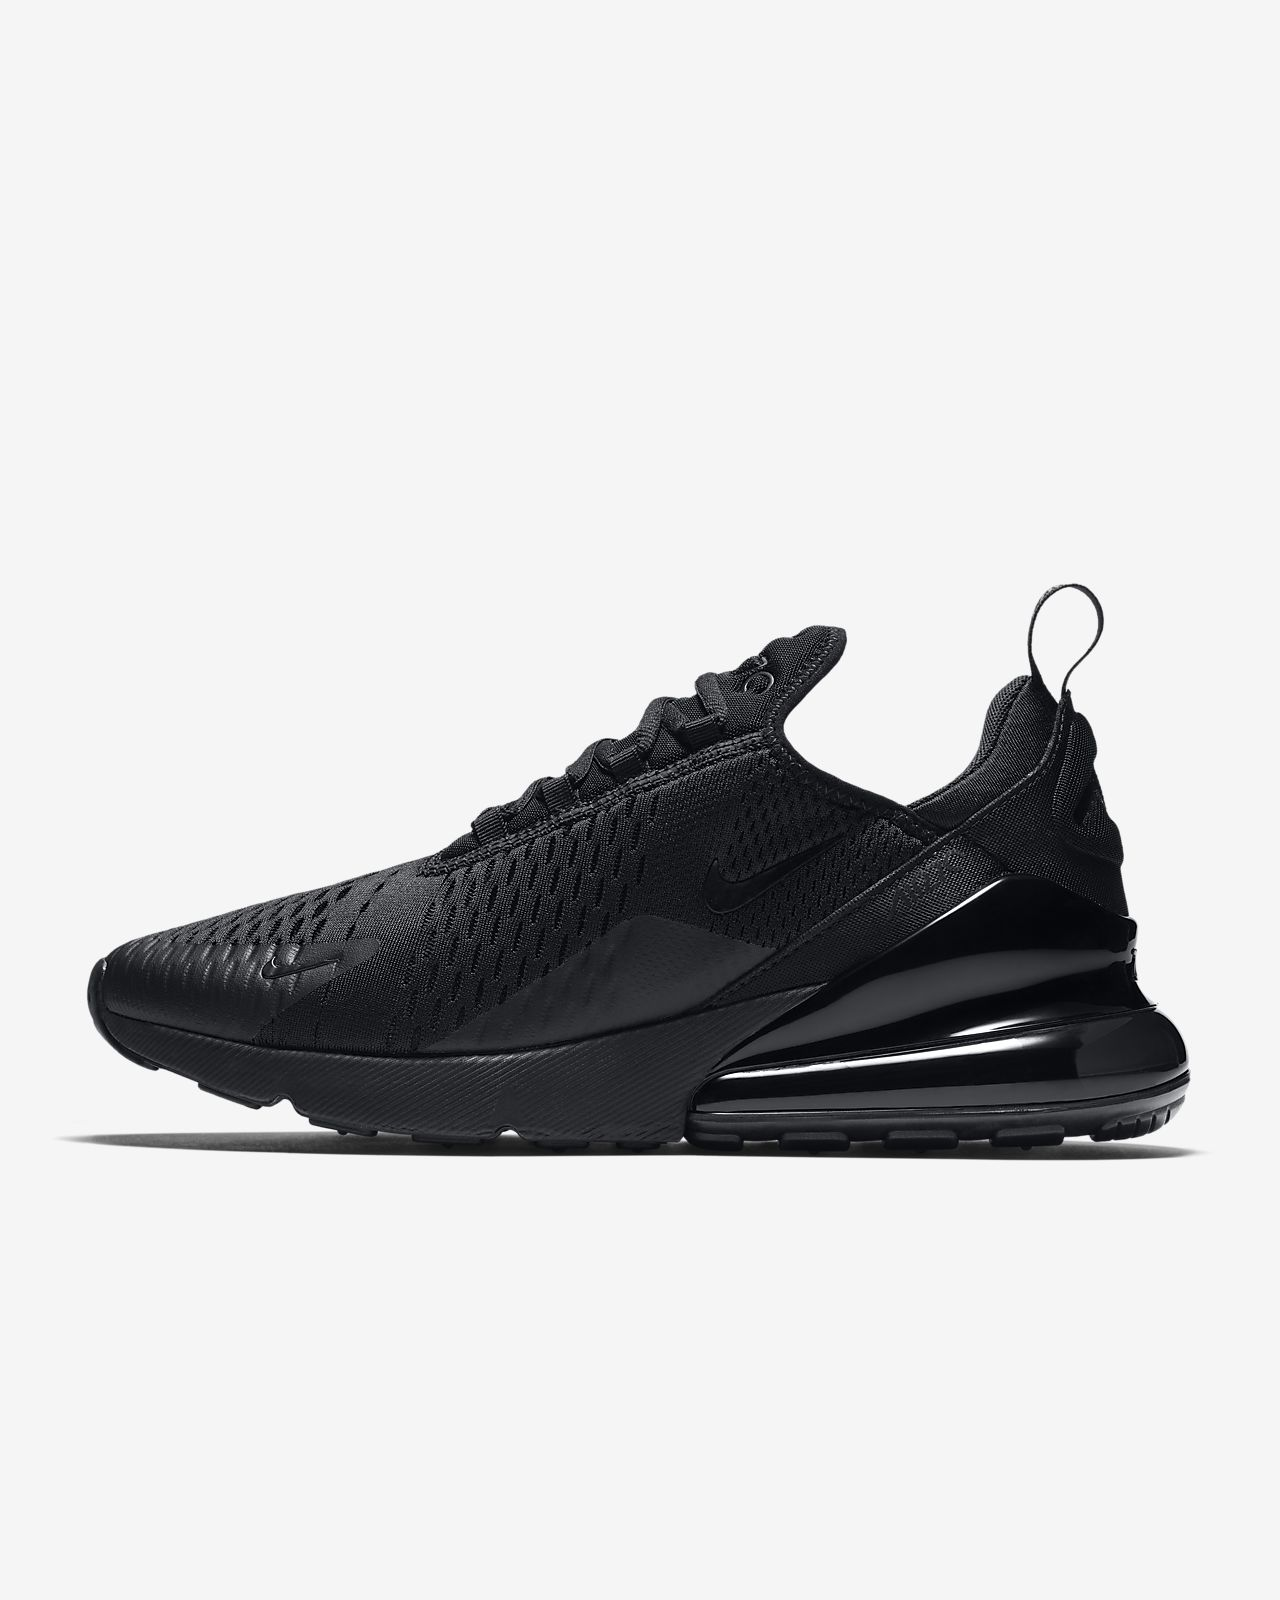 meet 2c141 14682 Men s Shoe. Nike Air Max 270